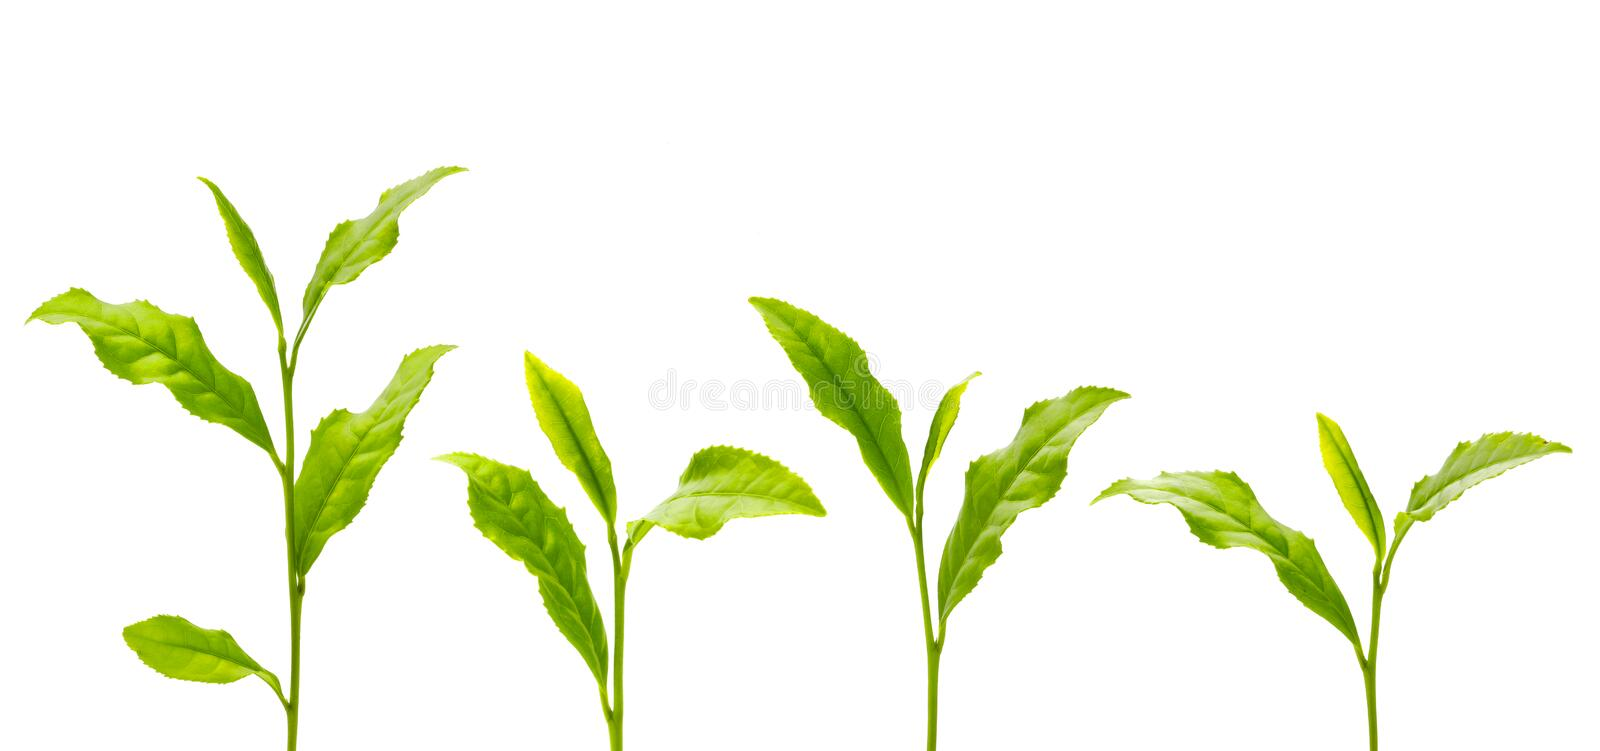 Green tea leaf royalty free stock images